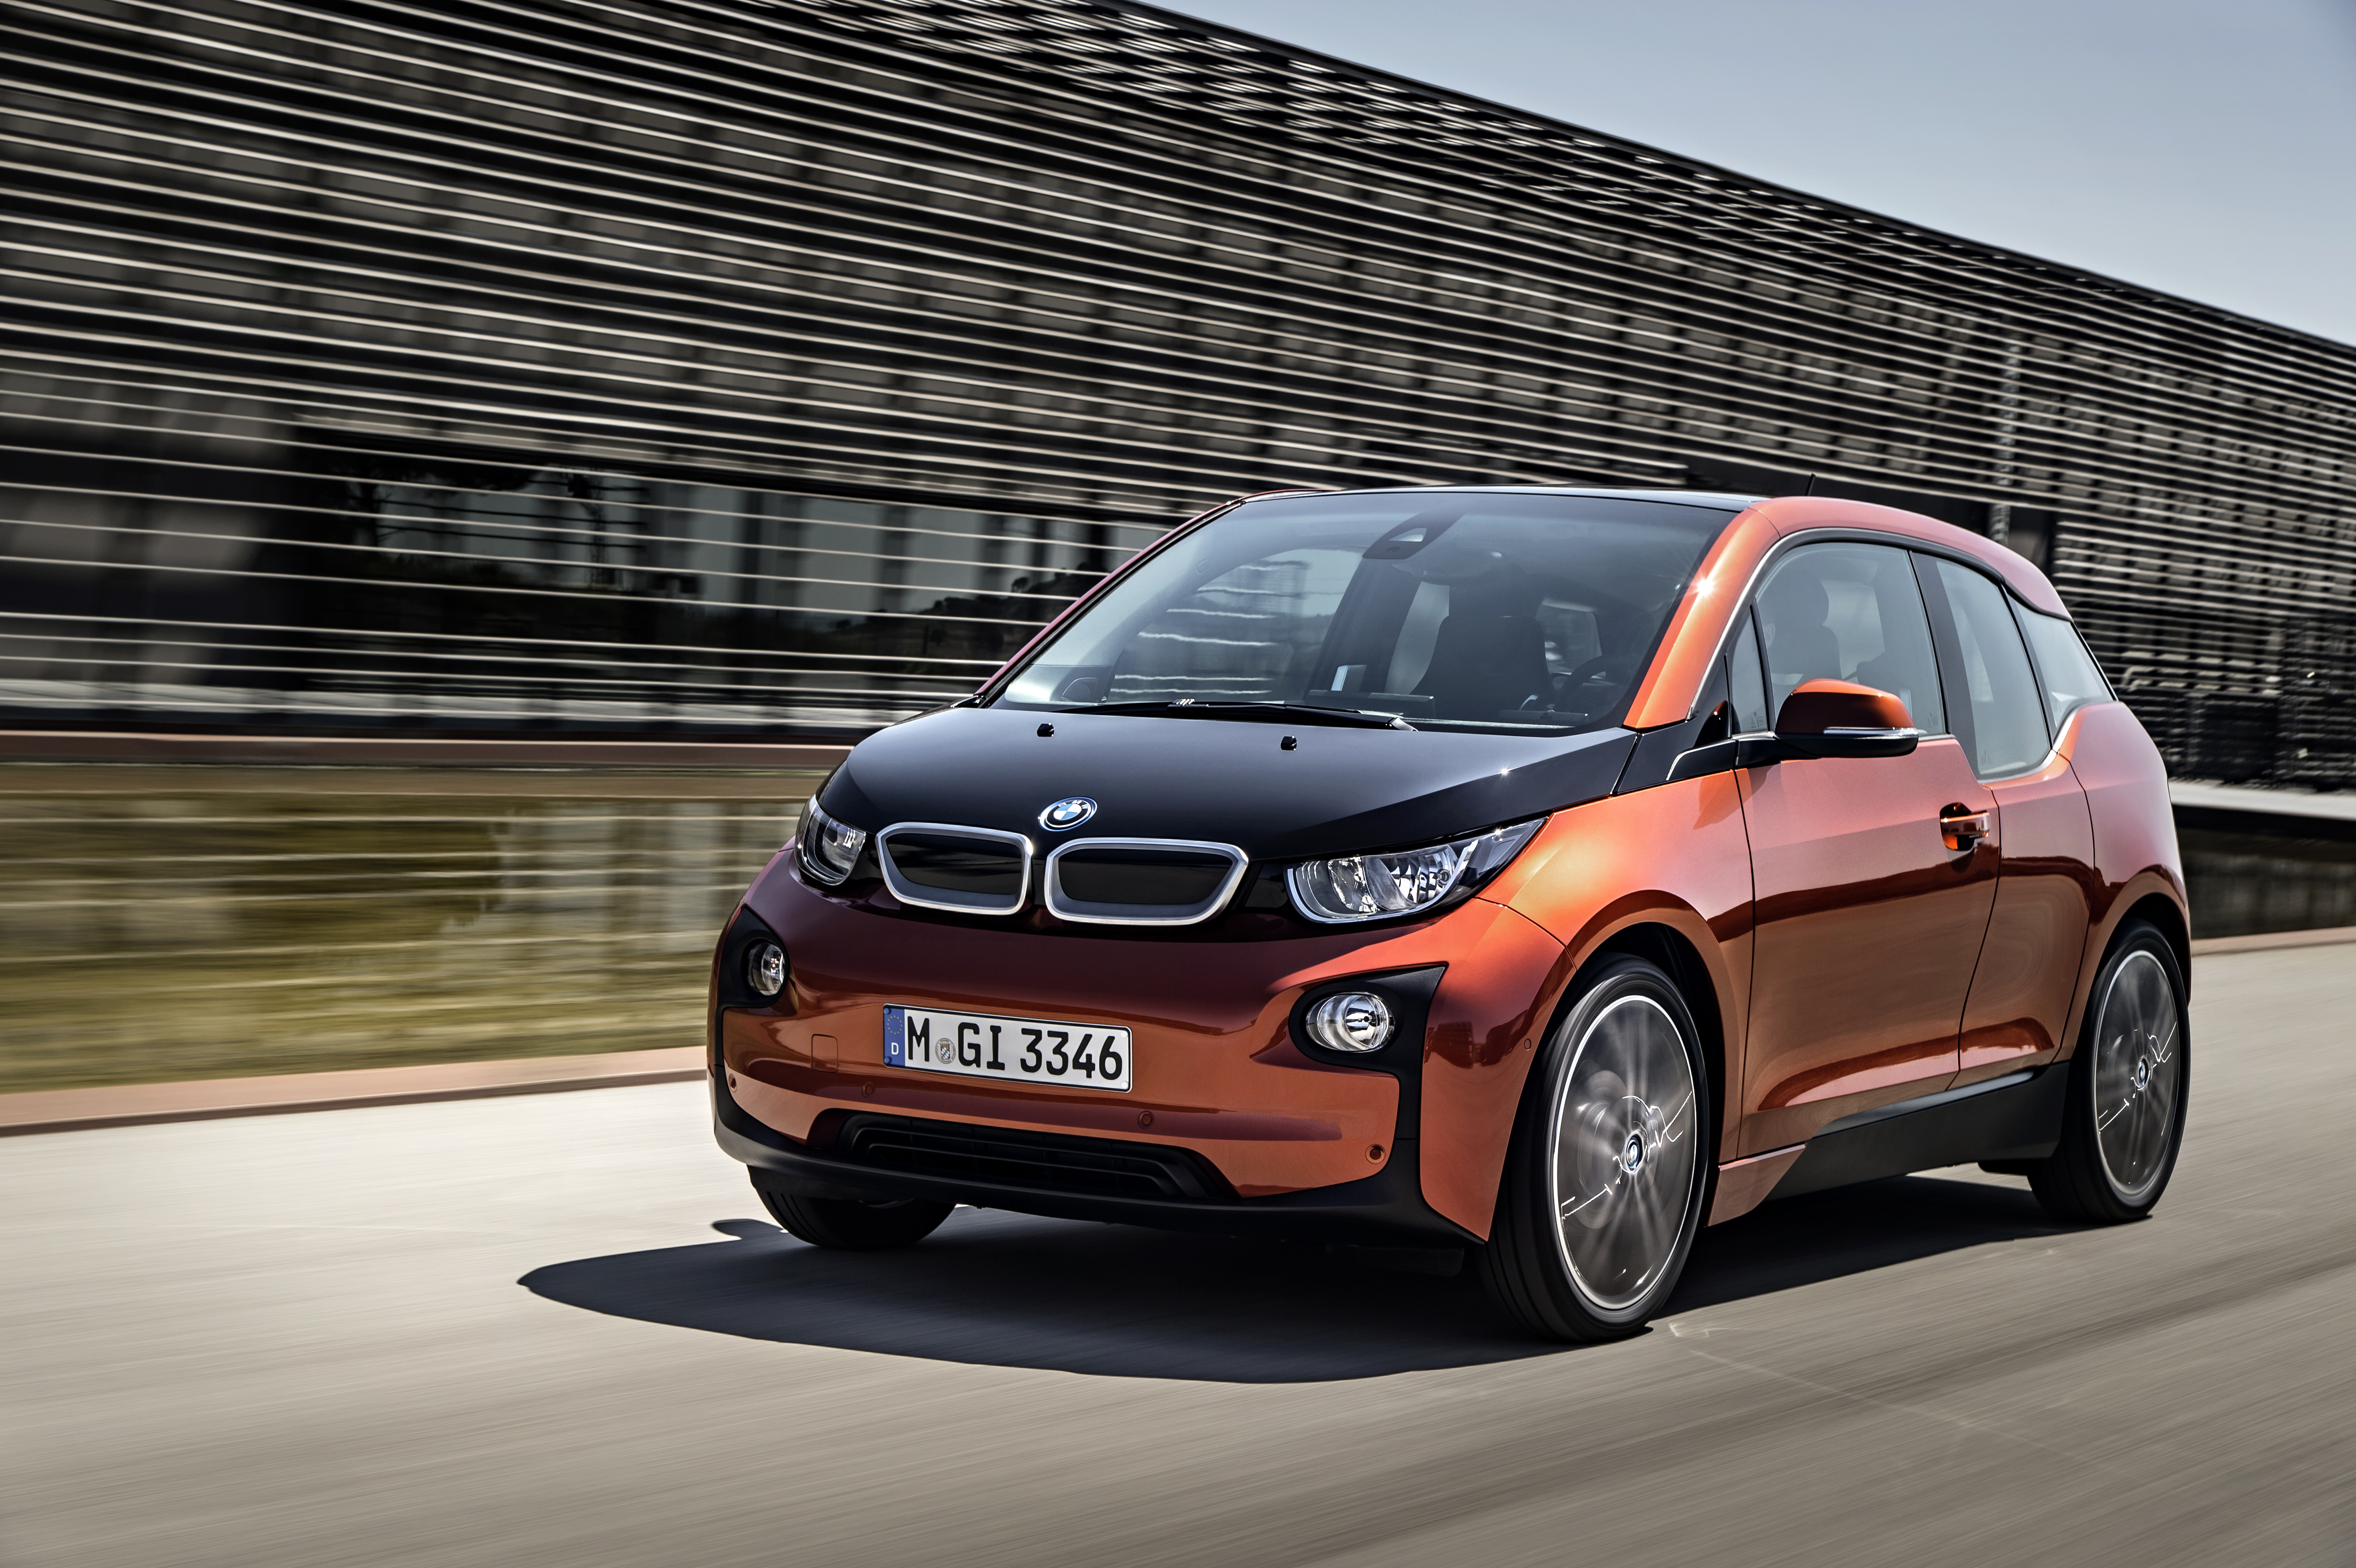 bmw i3 electrique voiture electrique. Black Bedroom Furniture Sets. Home Design Ideas